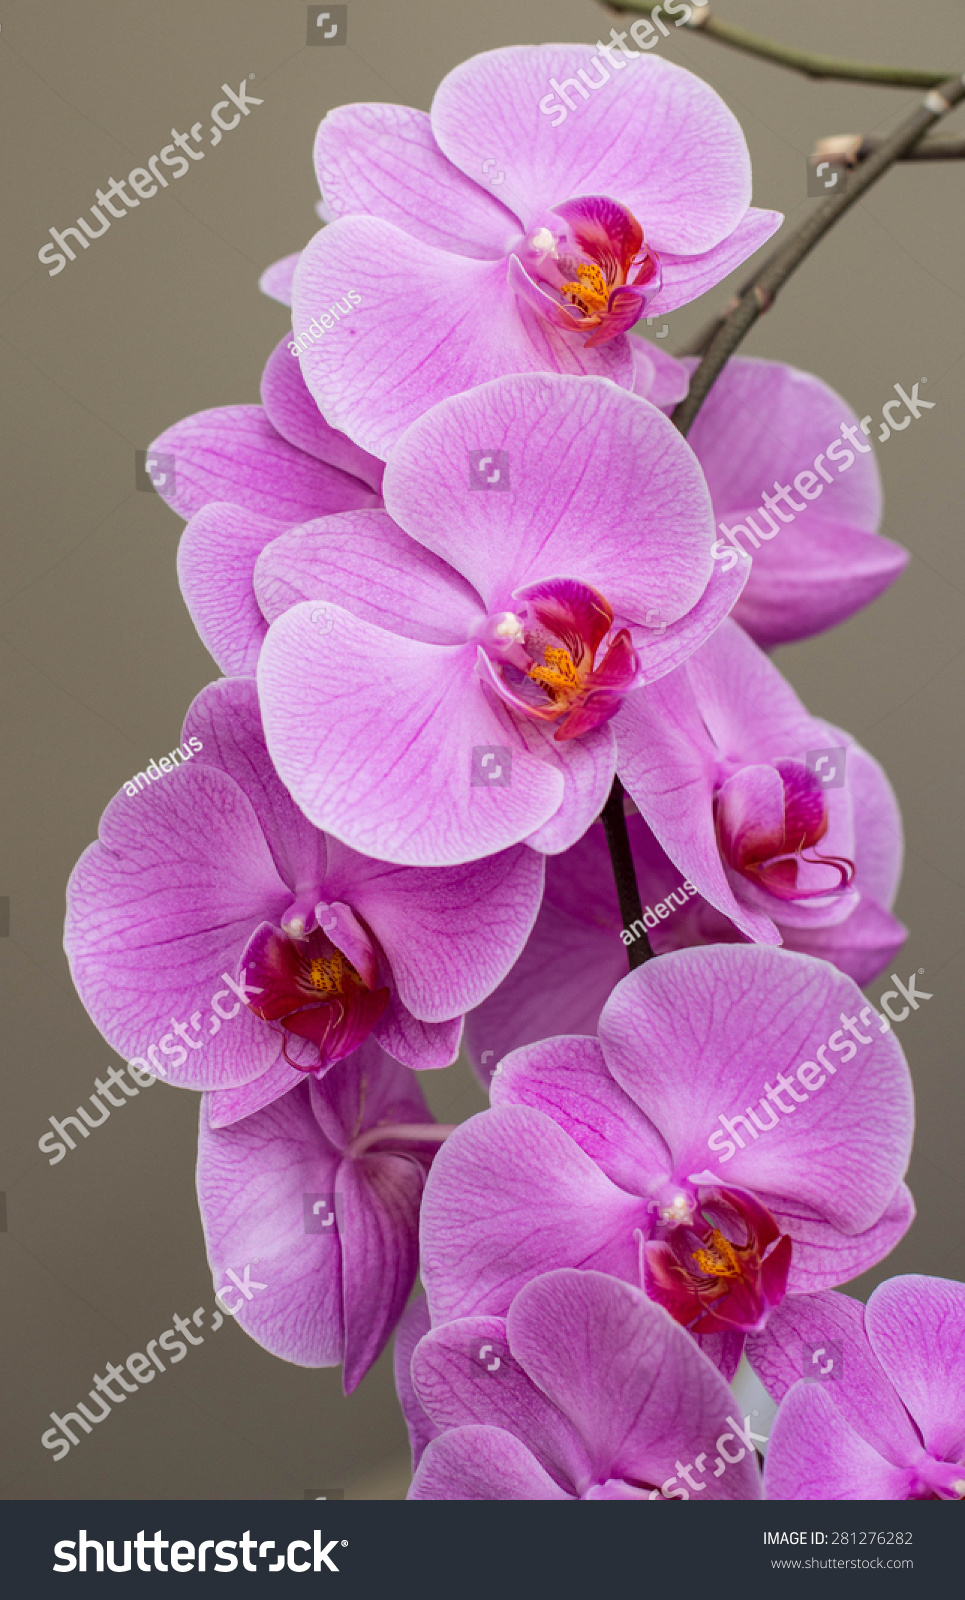 Beautiful flowers blooming orchid closeup stock photo 281276282 beautiful flowers blooming orchid closeup izmirmasajfo Images